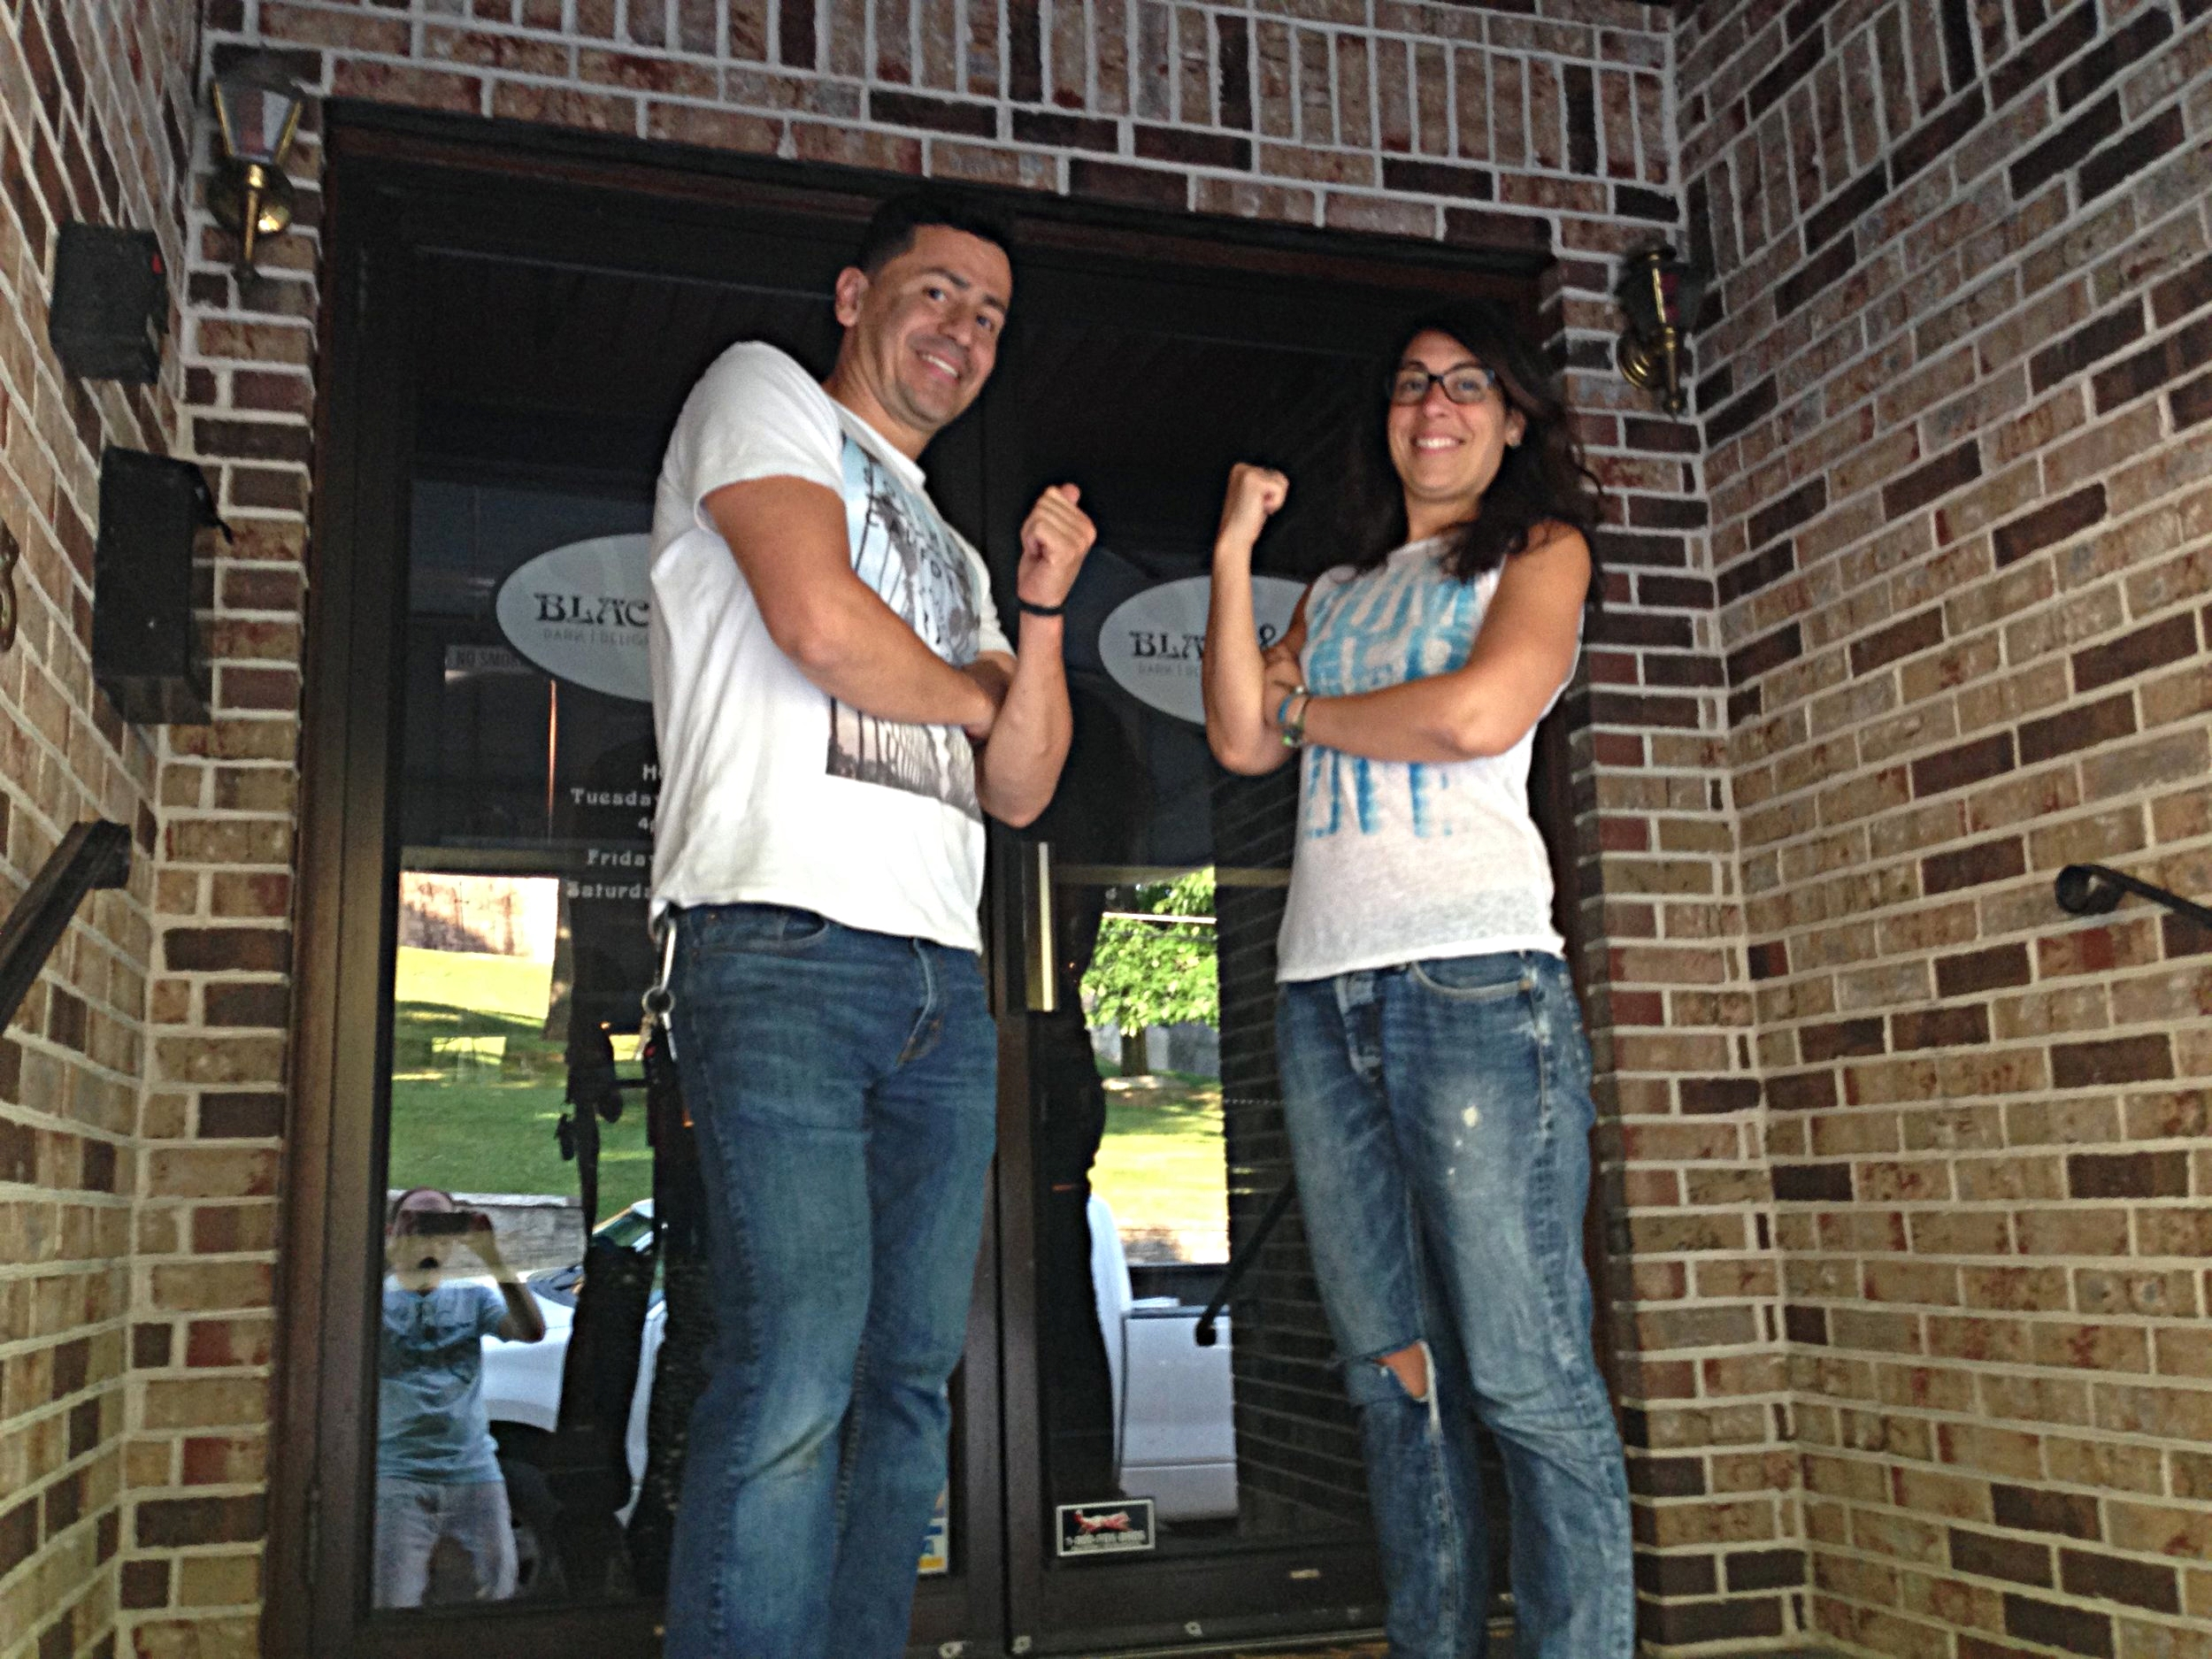 Managers Marcel Bedoya, left, and Tara Perruso are hoping to reopen Easton's Black & Blue in mid-July.  (Dustin Schoof Photo)